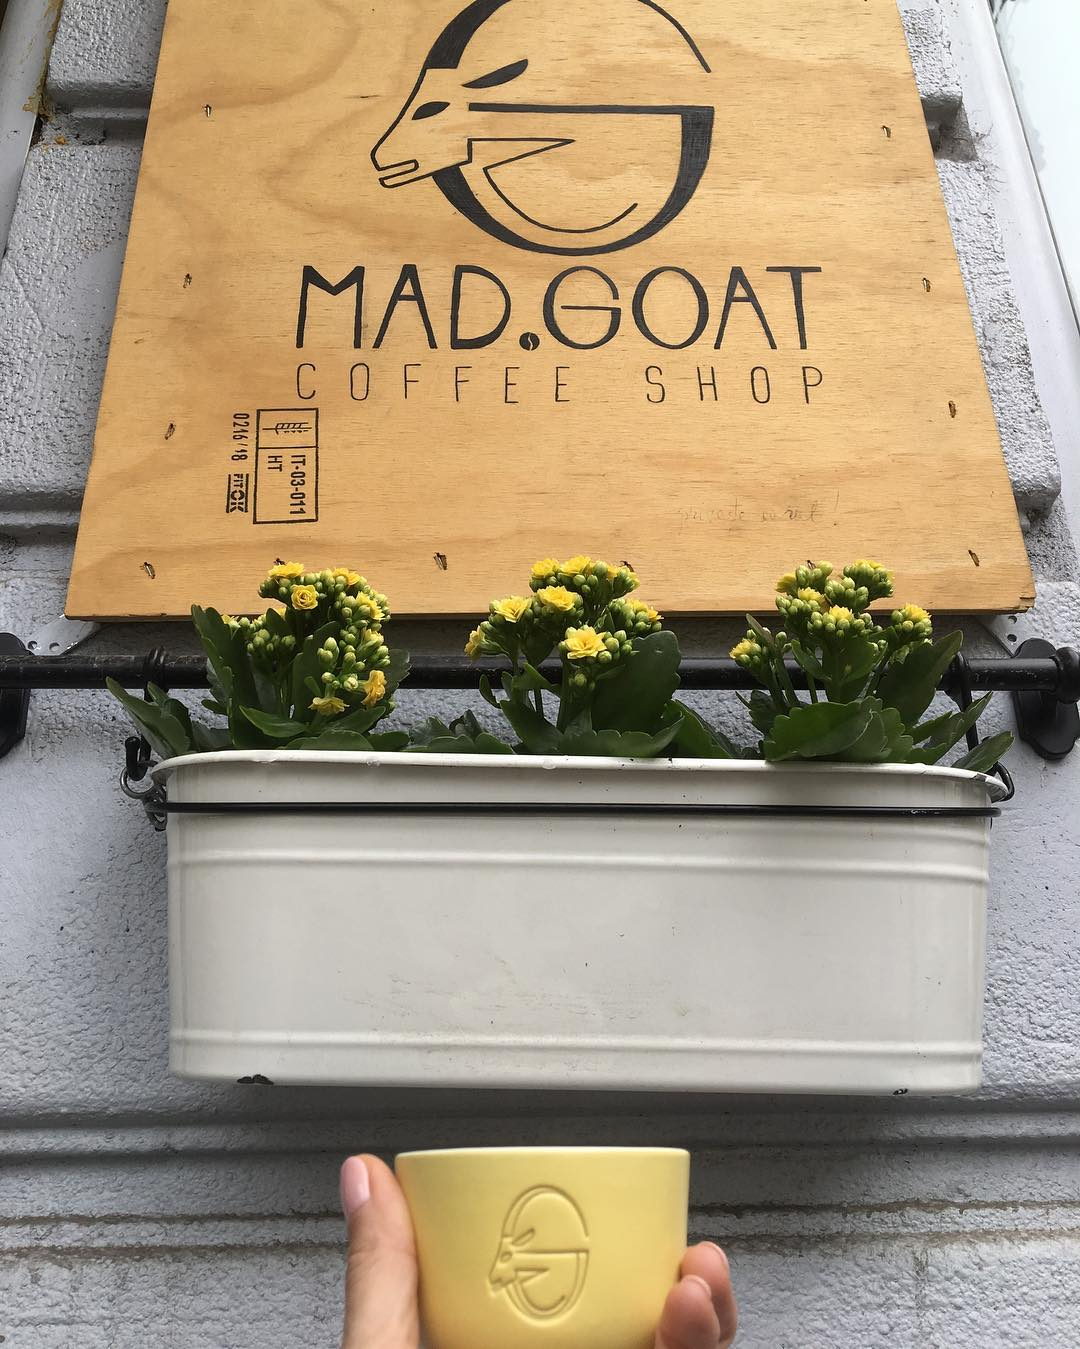 MAD.GOAT Coffee Shop